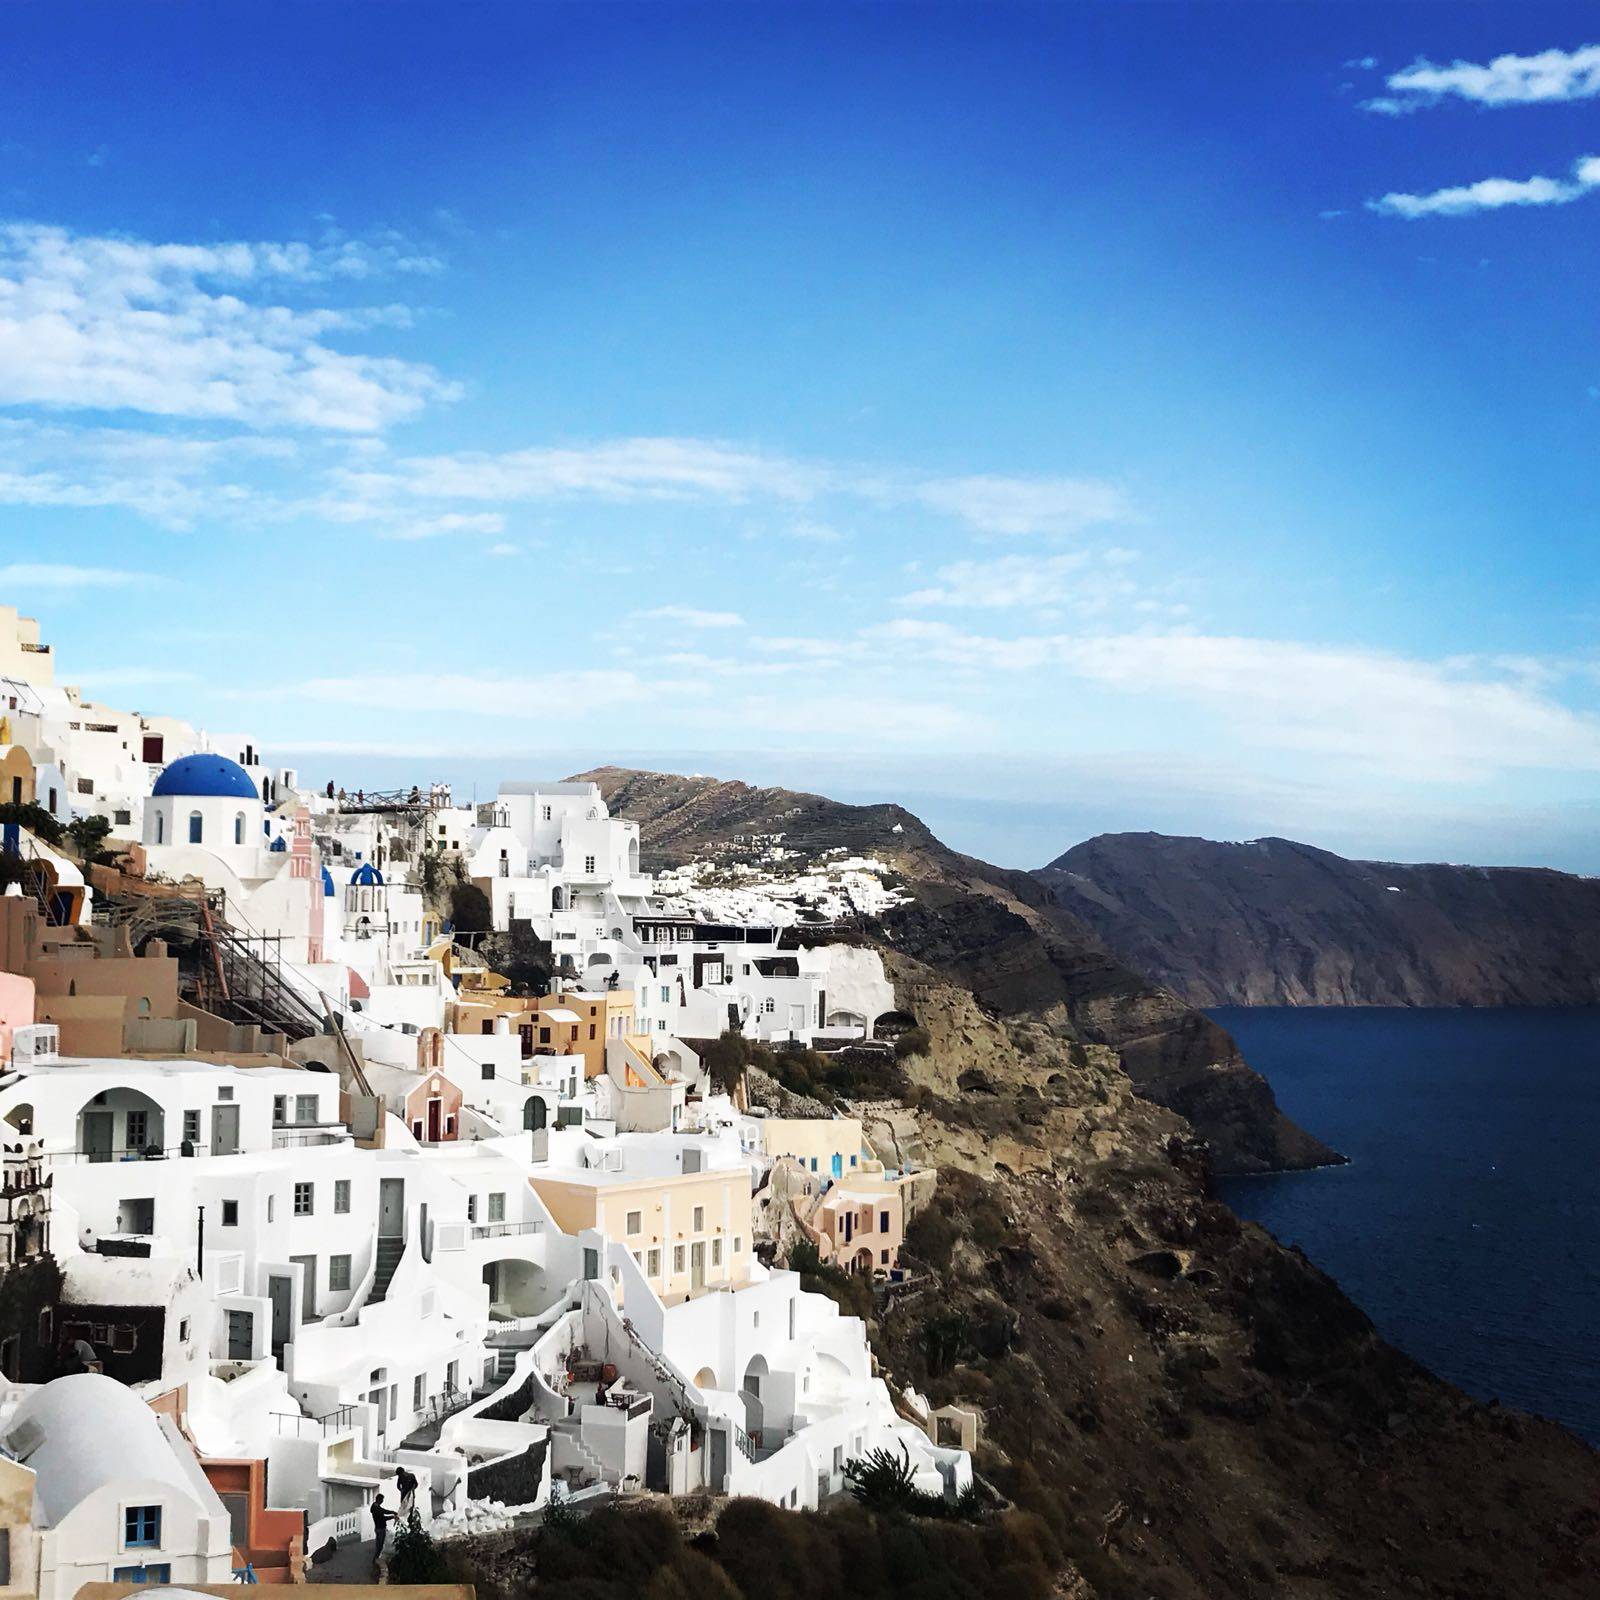 The houses of Oia, viewed from the side, showing the different coloured houses running down the cliff